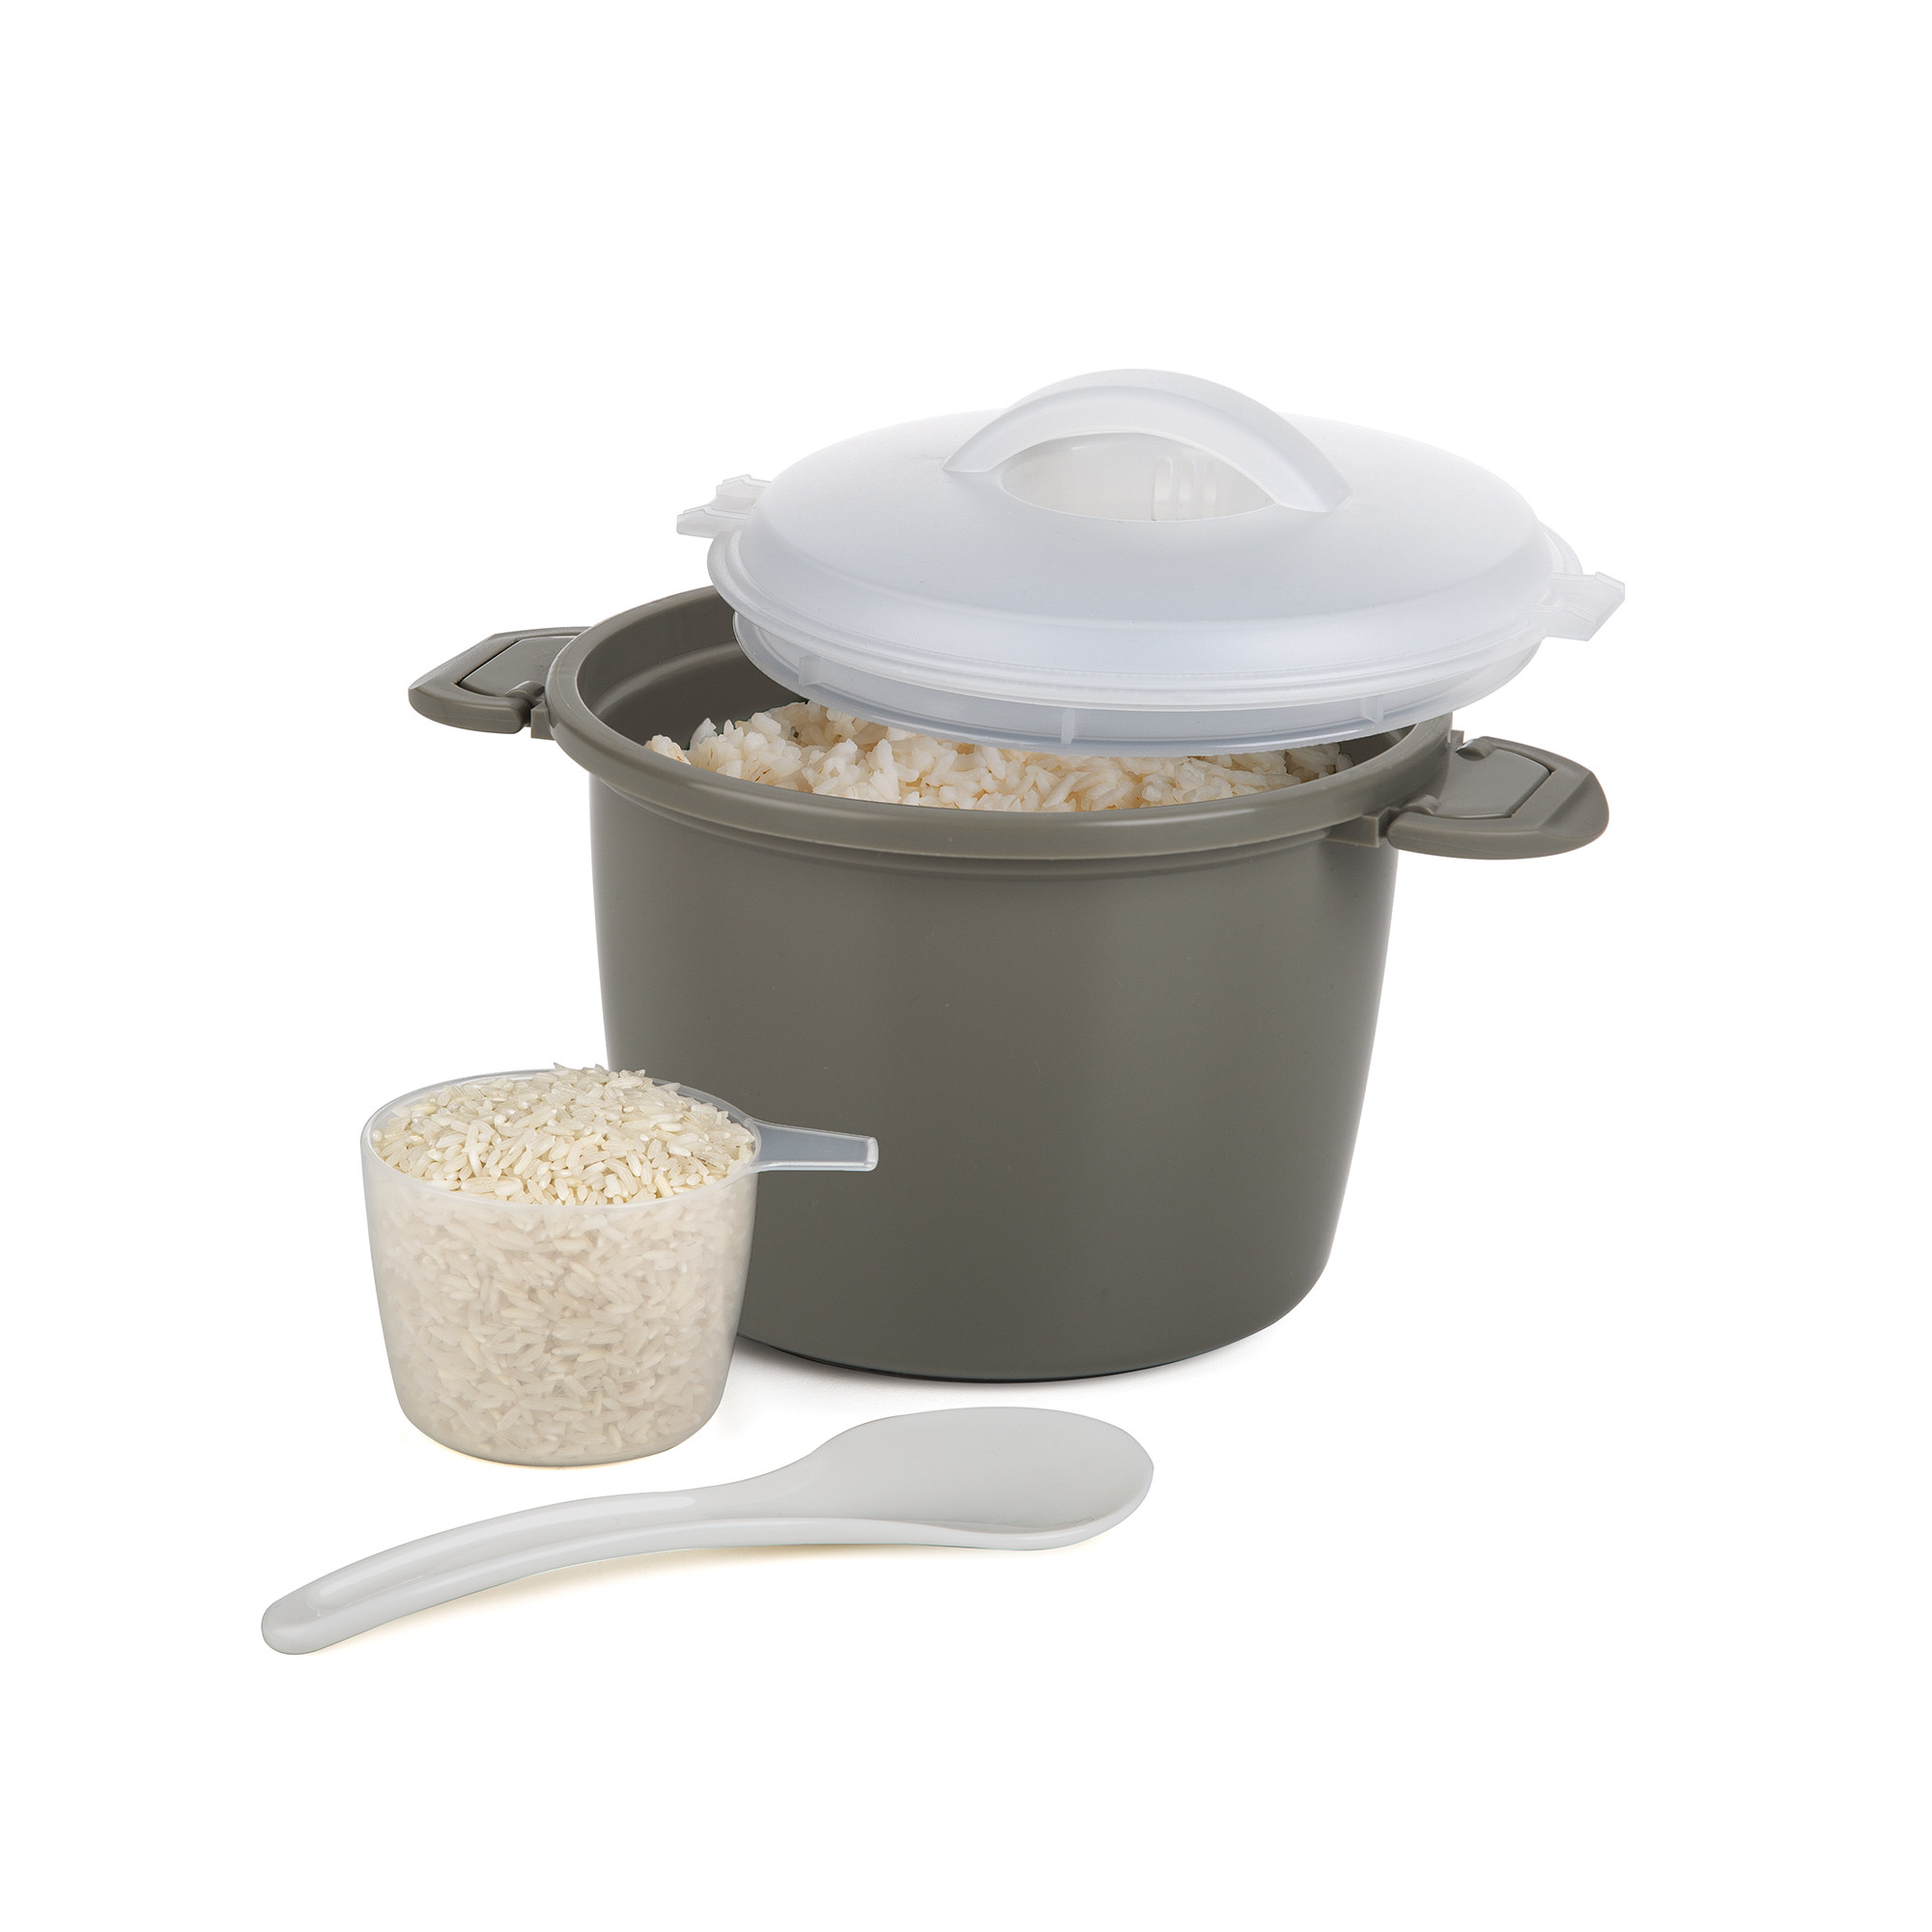 a grey rice cooker with a measuring cup and spoon